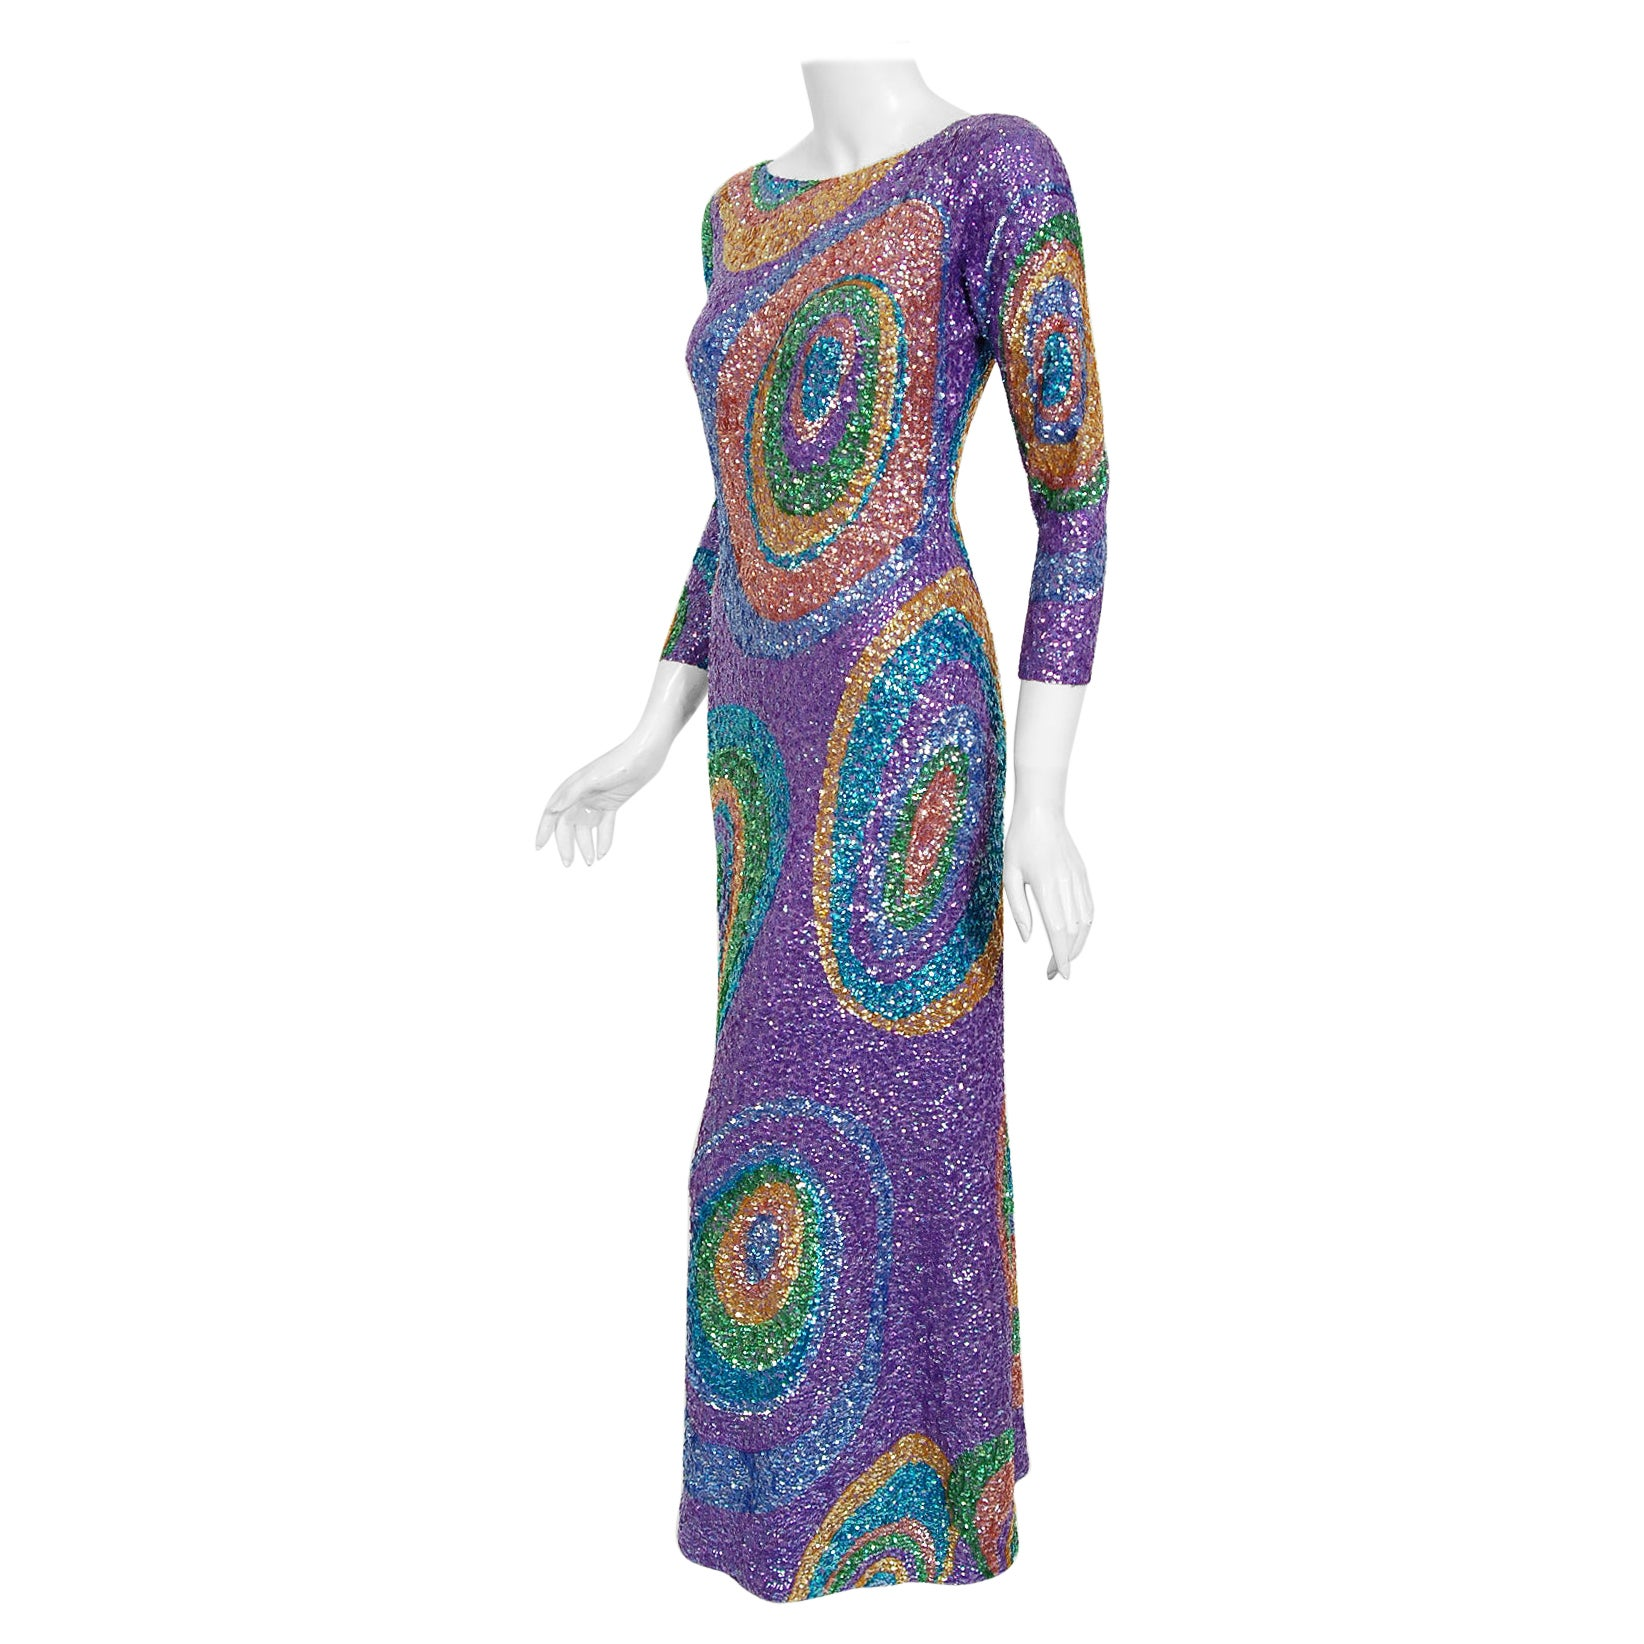 Vintage 1960's Gene Shelly Colorful Atomic Swirl Sequin Wool Knit Hourglass Gown